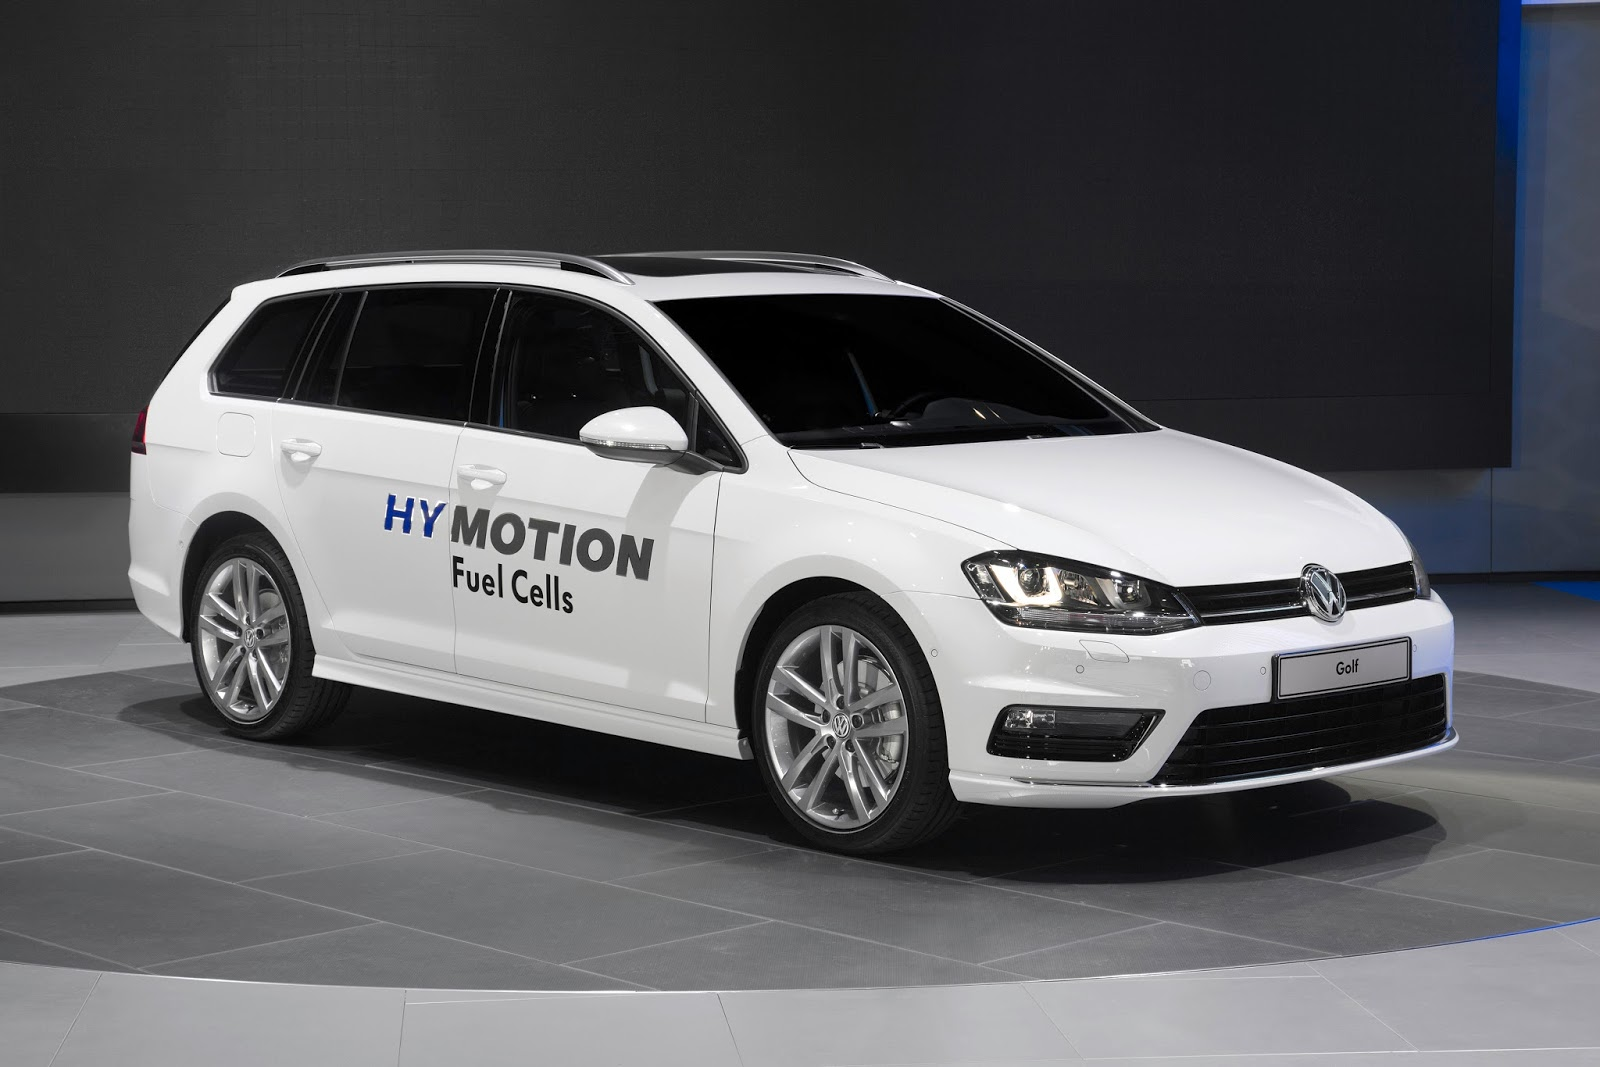 vw jumps on fuel cell bandwagon with golf and passat hymotion. Black Bedroom Furniture Sets. Home Design Ideas